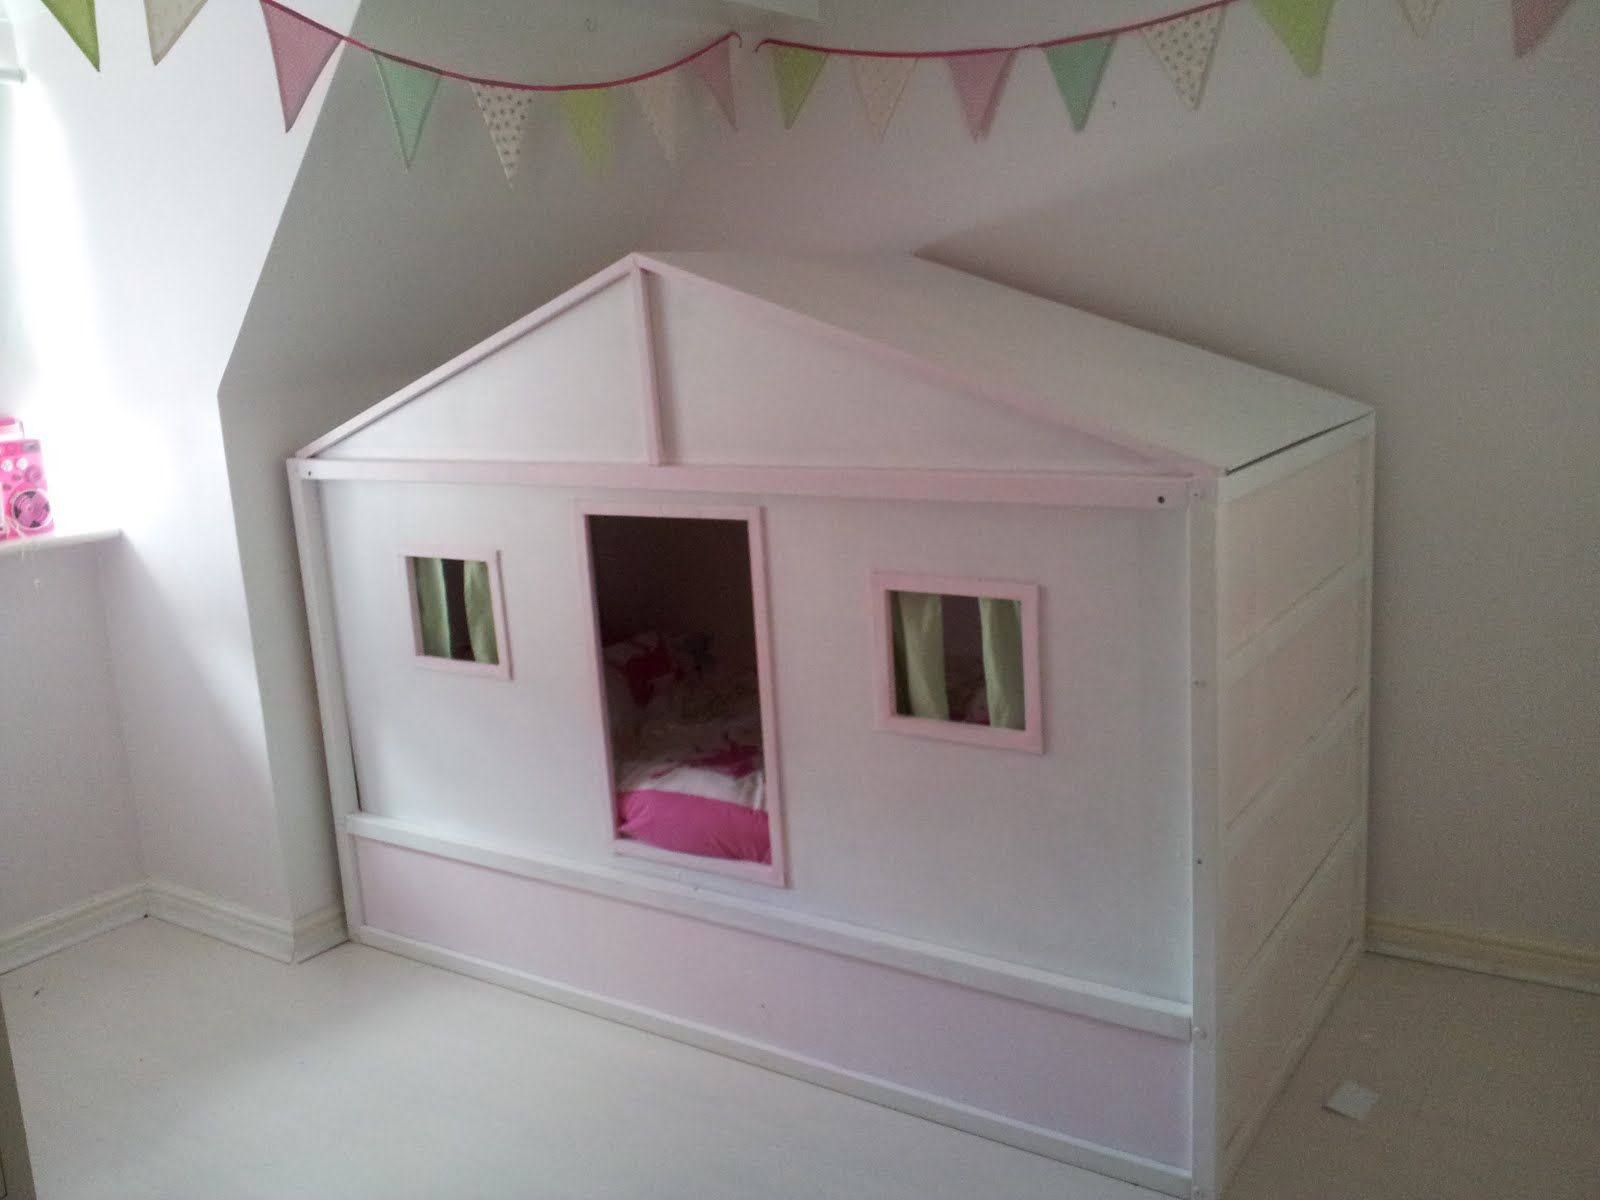 Hausbett Etagenbett : Kura bed cottage hack ikea hacks pinterest kinderzimmer bett